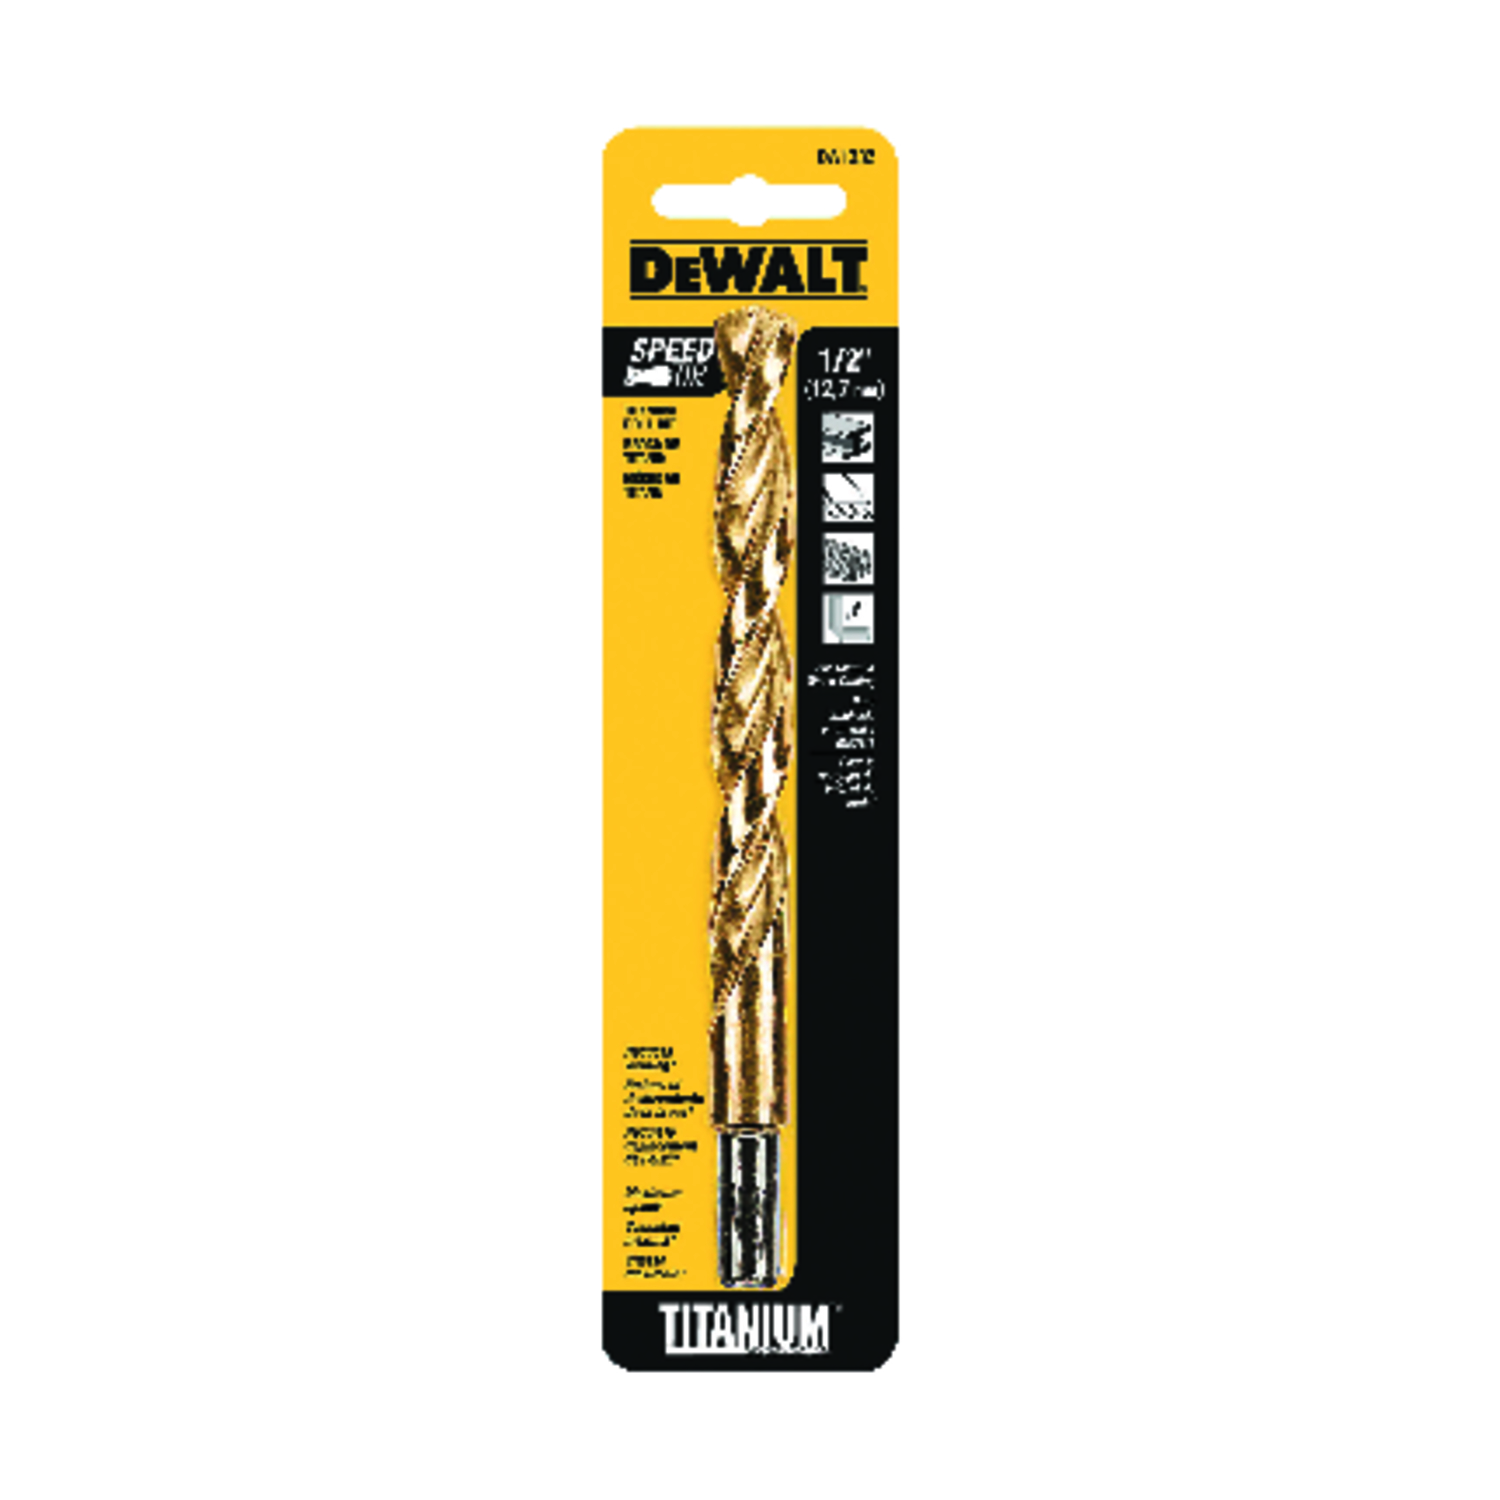 DeWalt  1/2 in. Dia. x 6 in. L Titanium  3/8 in. Straight Shank  1 pc. Split Point Drill Bit